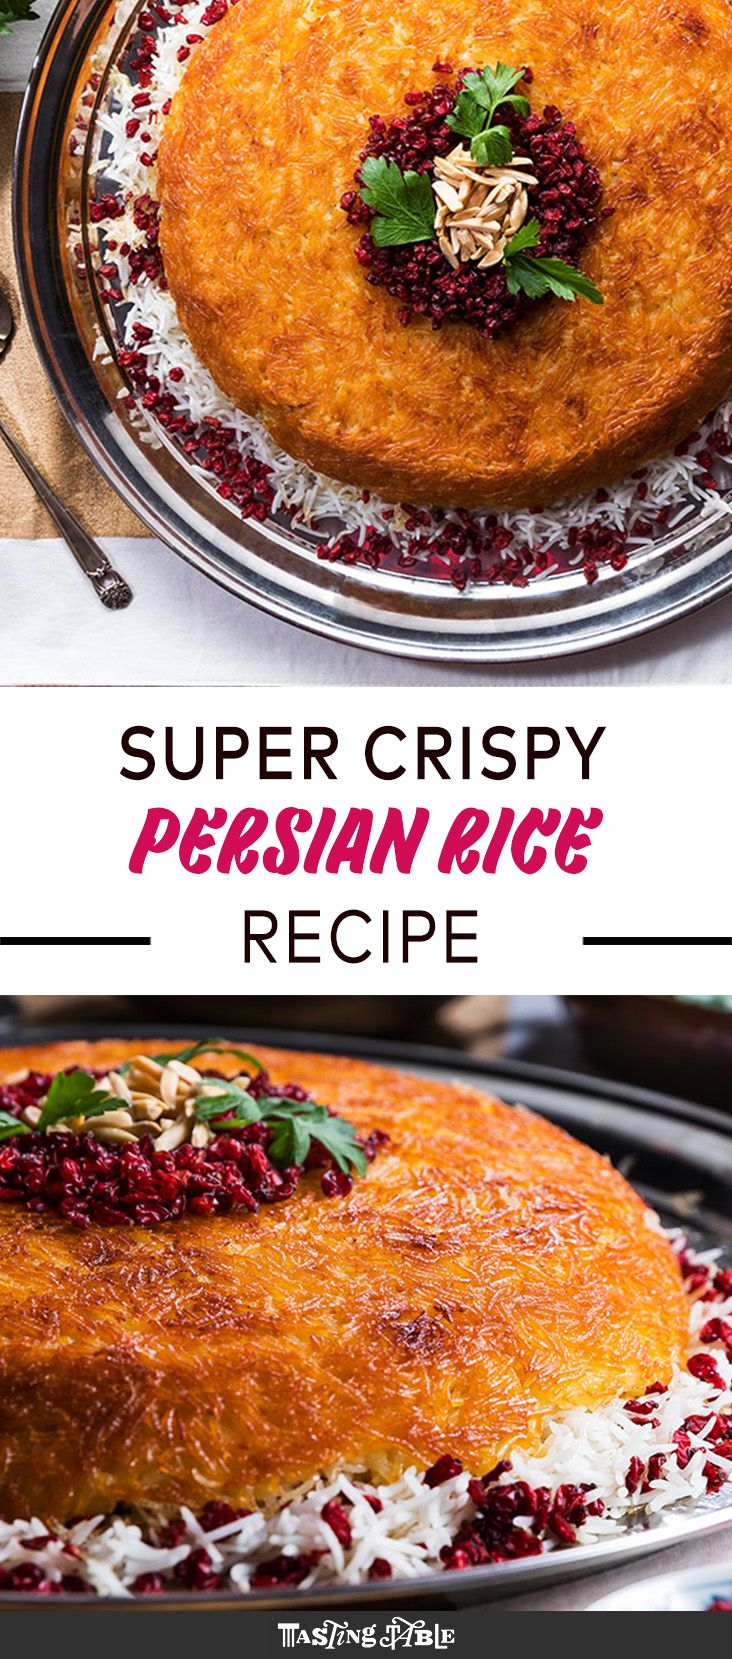 This classic Persian rice dish layers fluffy basmati rice with yogurt-marinated chicken before baking in a cast-iron Dutch oven to form a crispy golden crust.